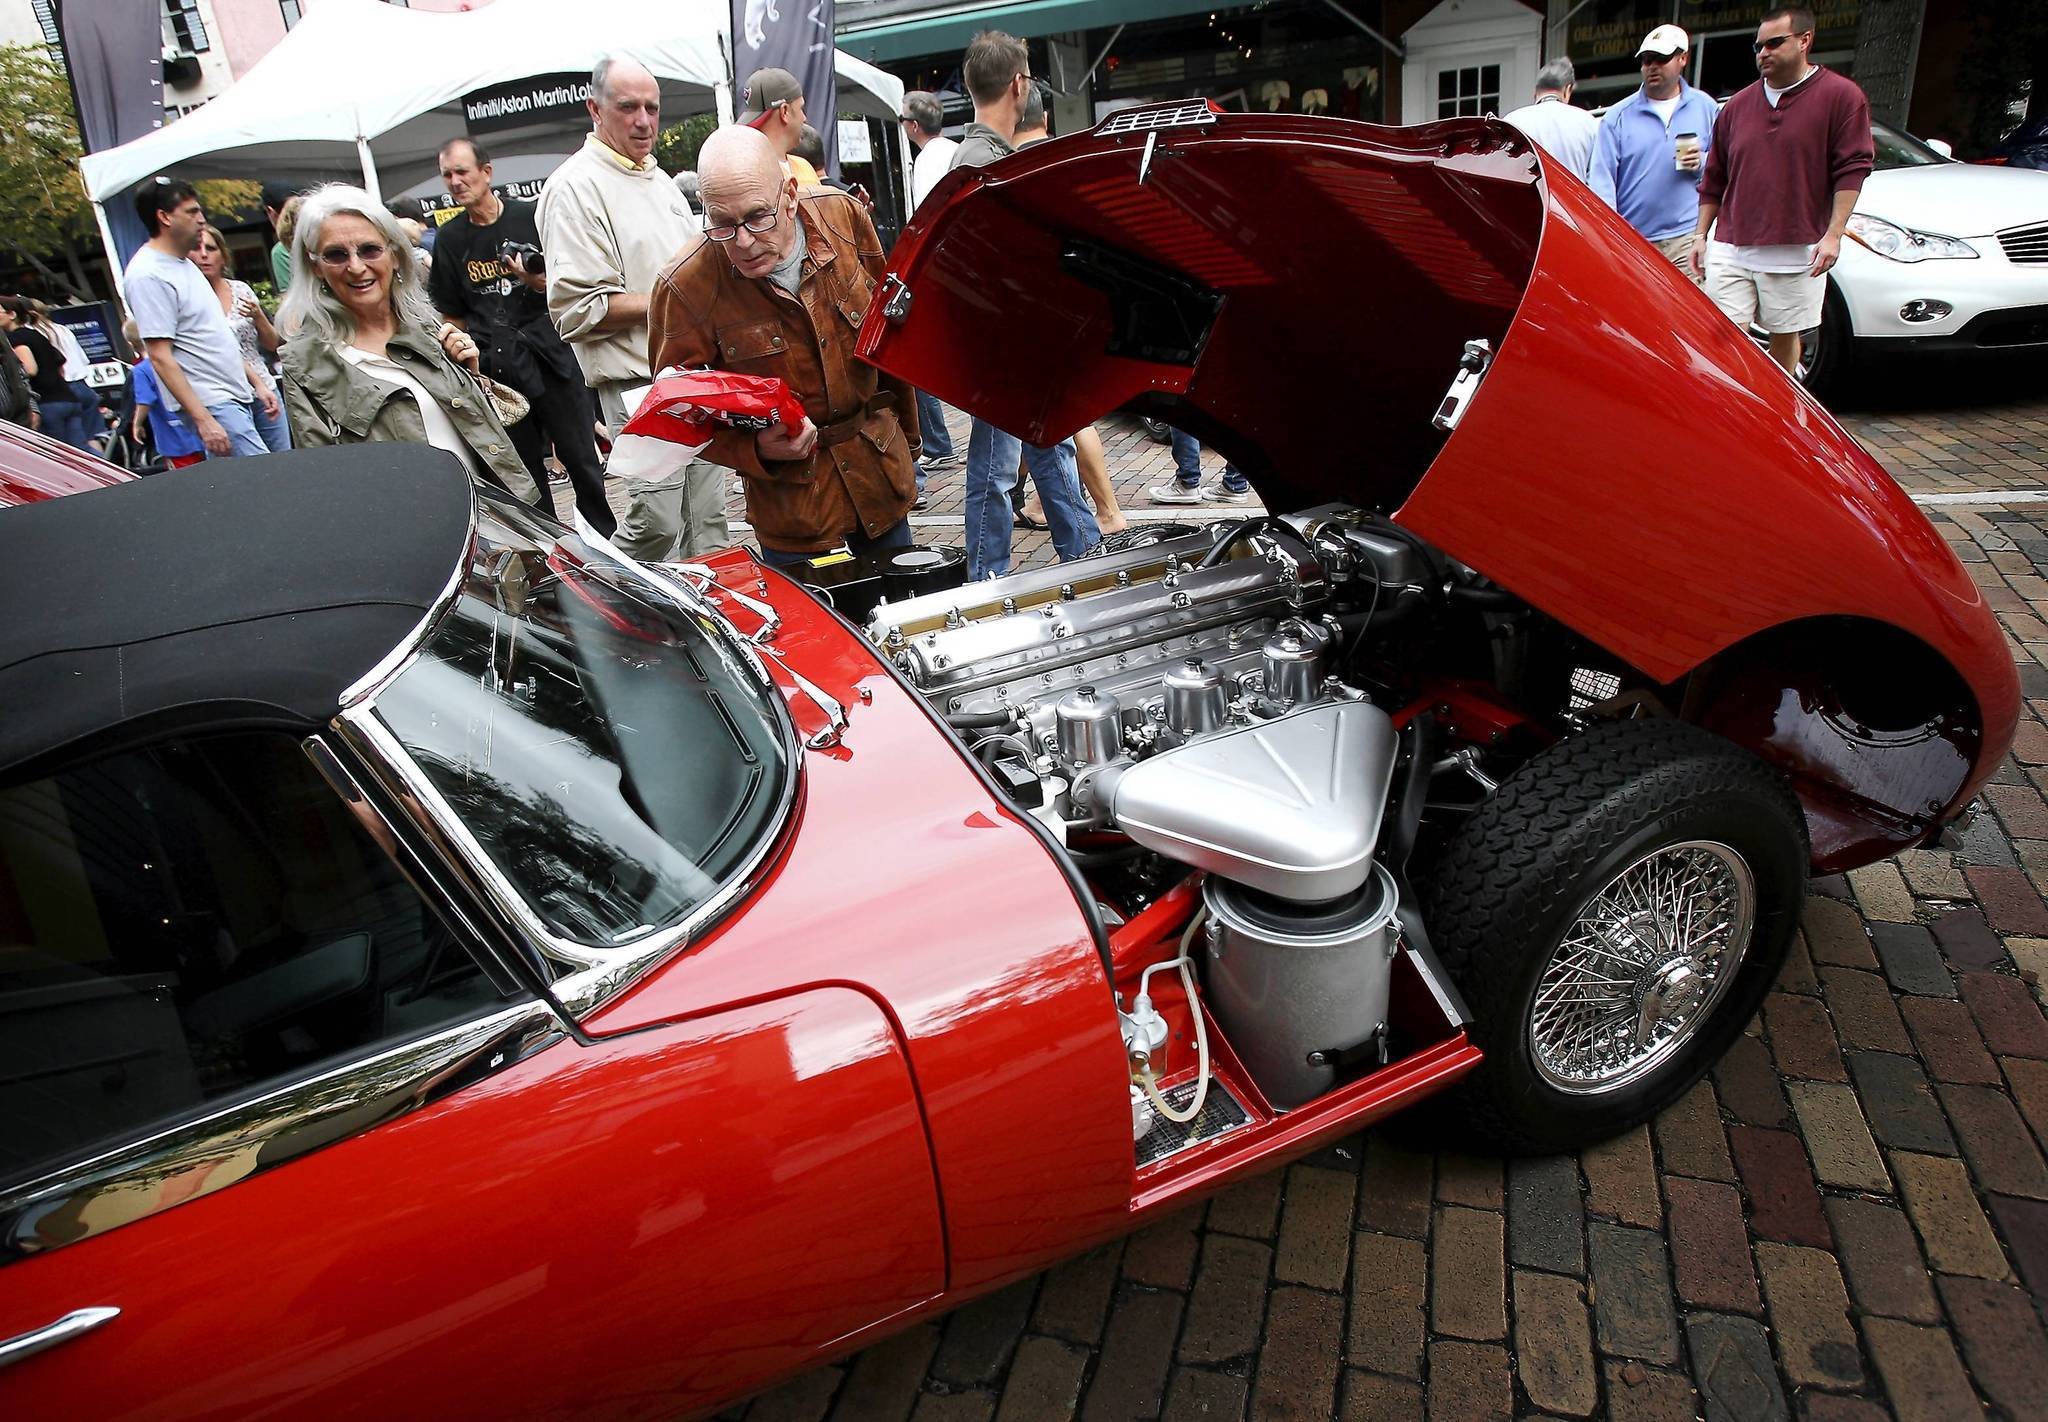 Car enthusiasts check out a 1966 Jaguar 3 Type Roadster along Park Ave during the Concours d'Elegance luxury auto show in Winter Park on November 6, 2011.